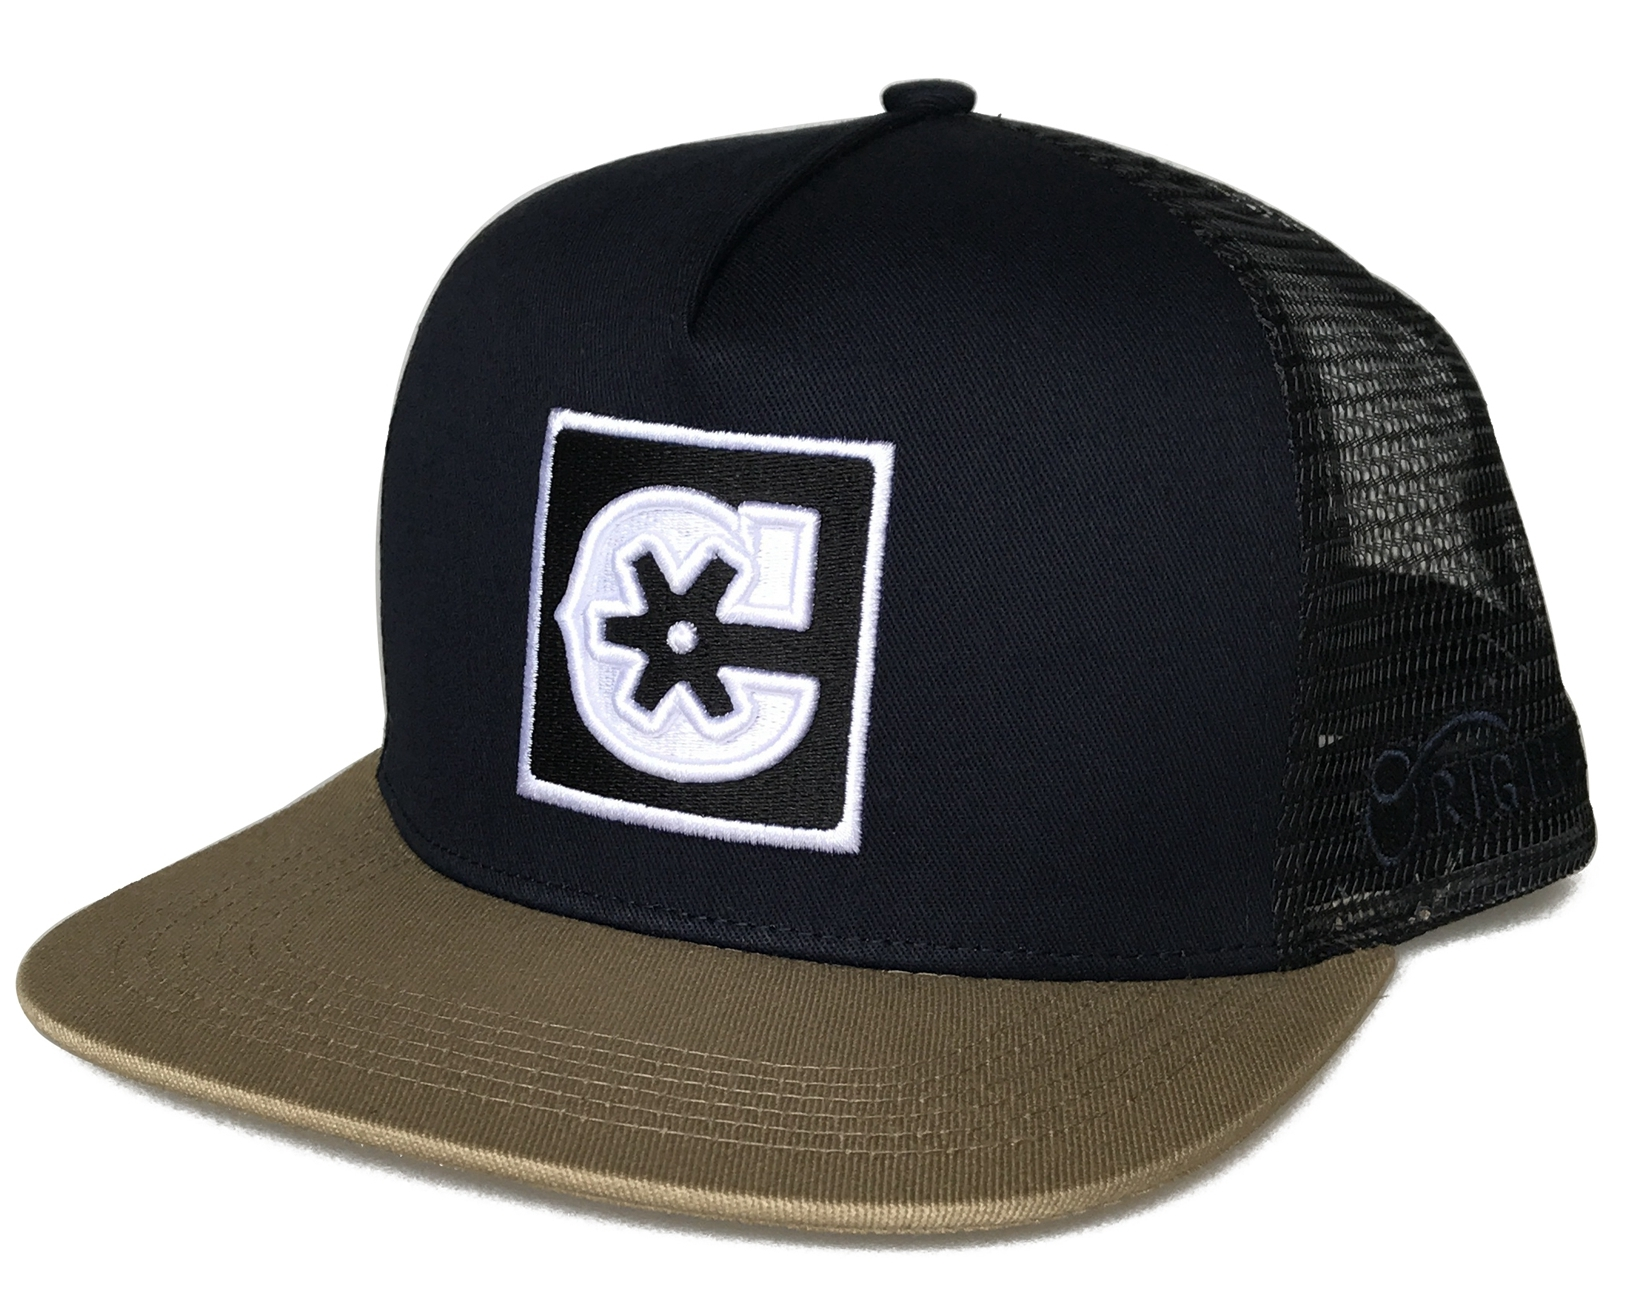 Dark navy snapback cap style trucker hat supplier